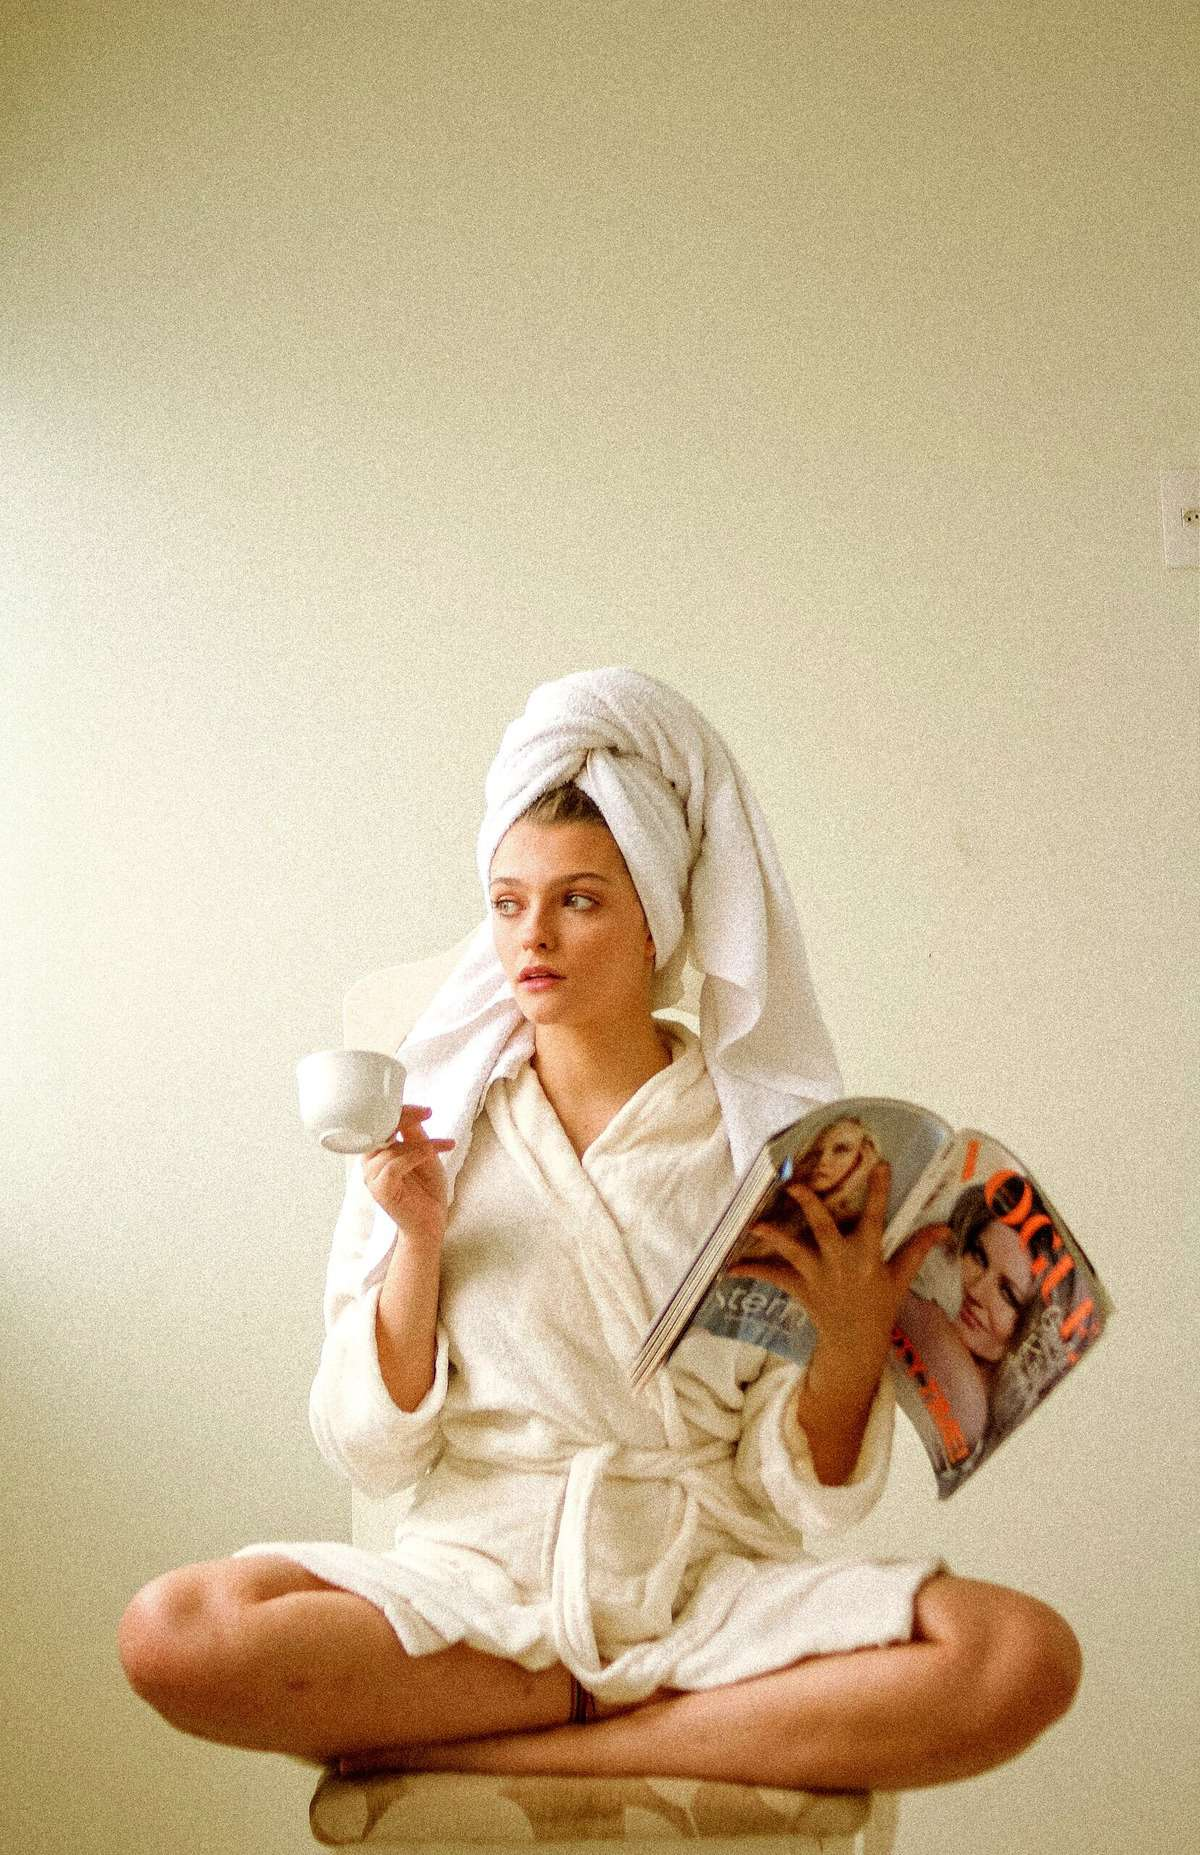 A woman in a robe, drinking coffee, and reading a magazine.